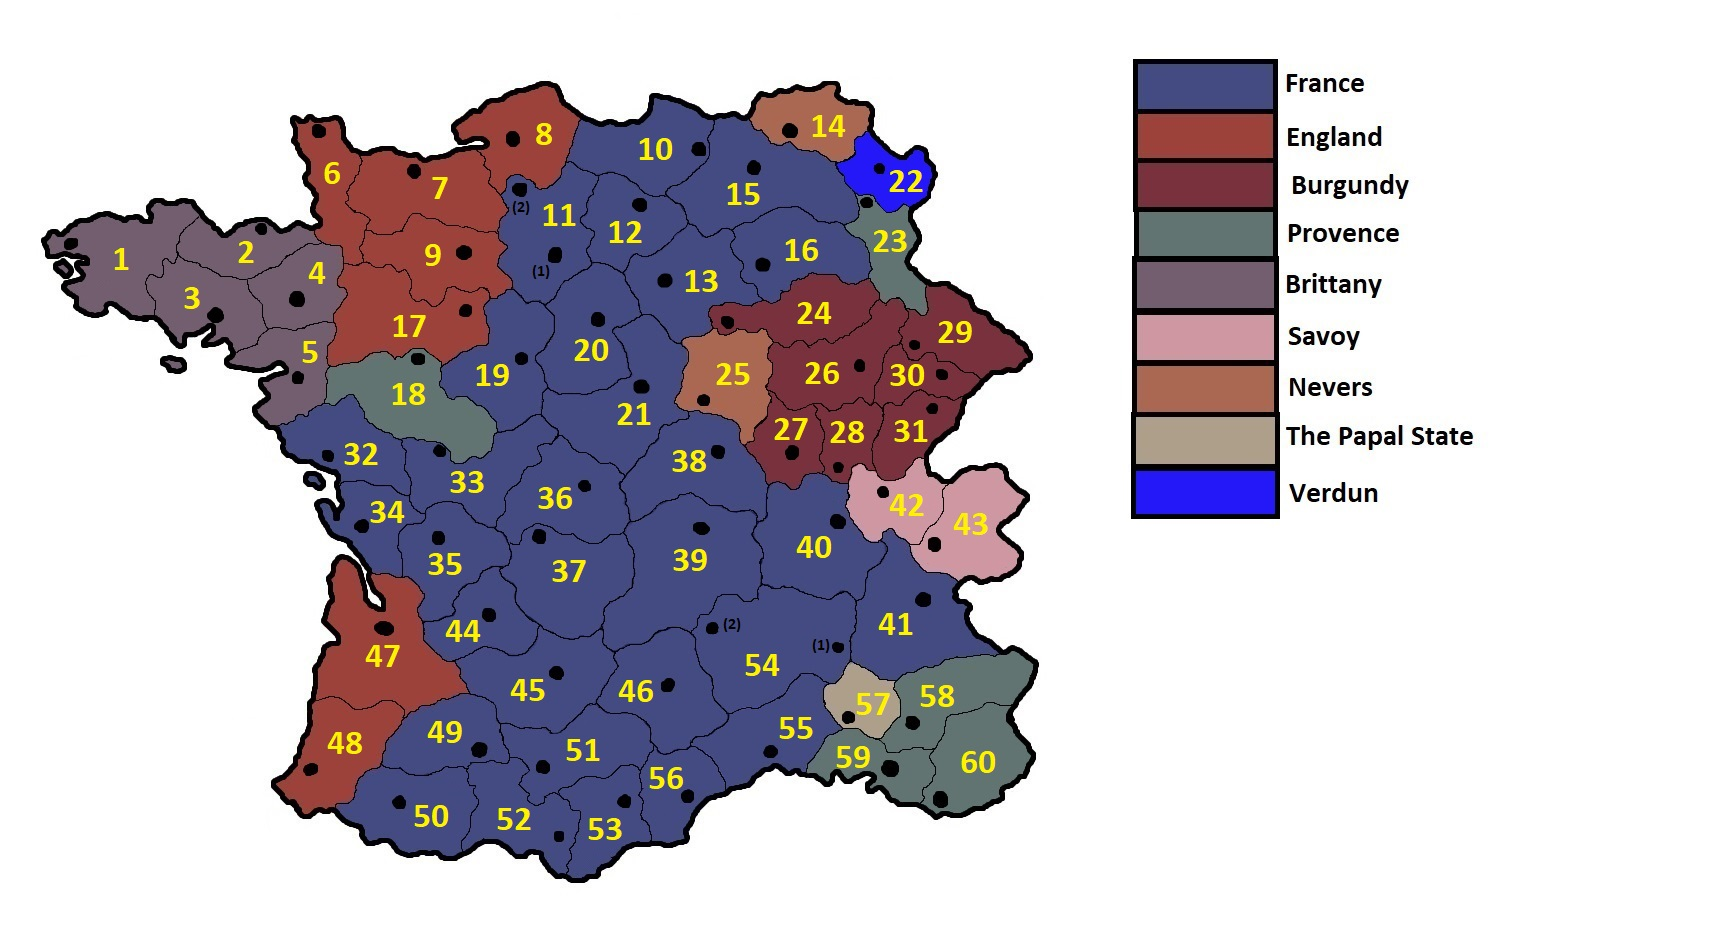 Map Of Provinces In France.1 29 More Provinces For France And Some Corrections Paradox